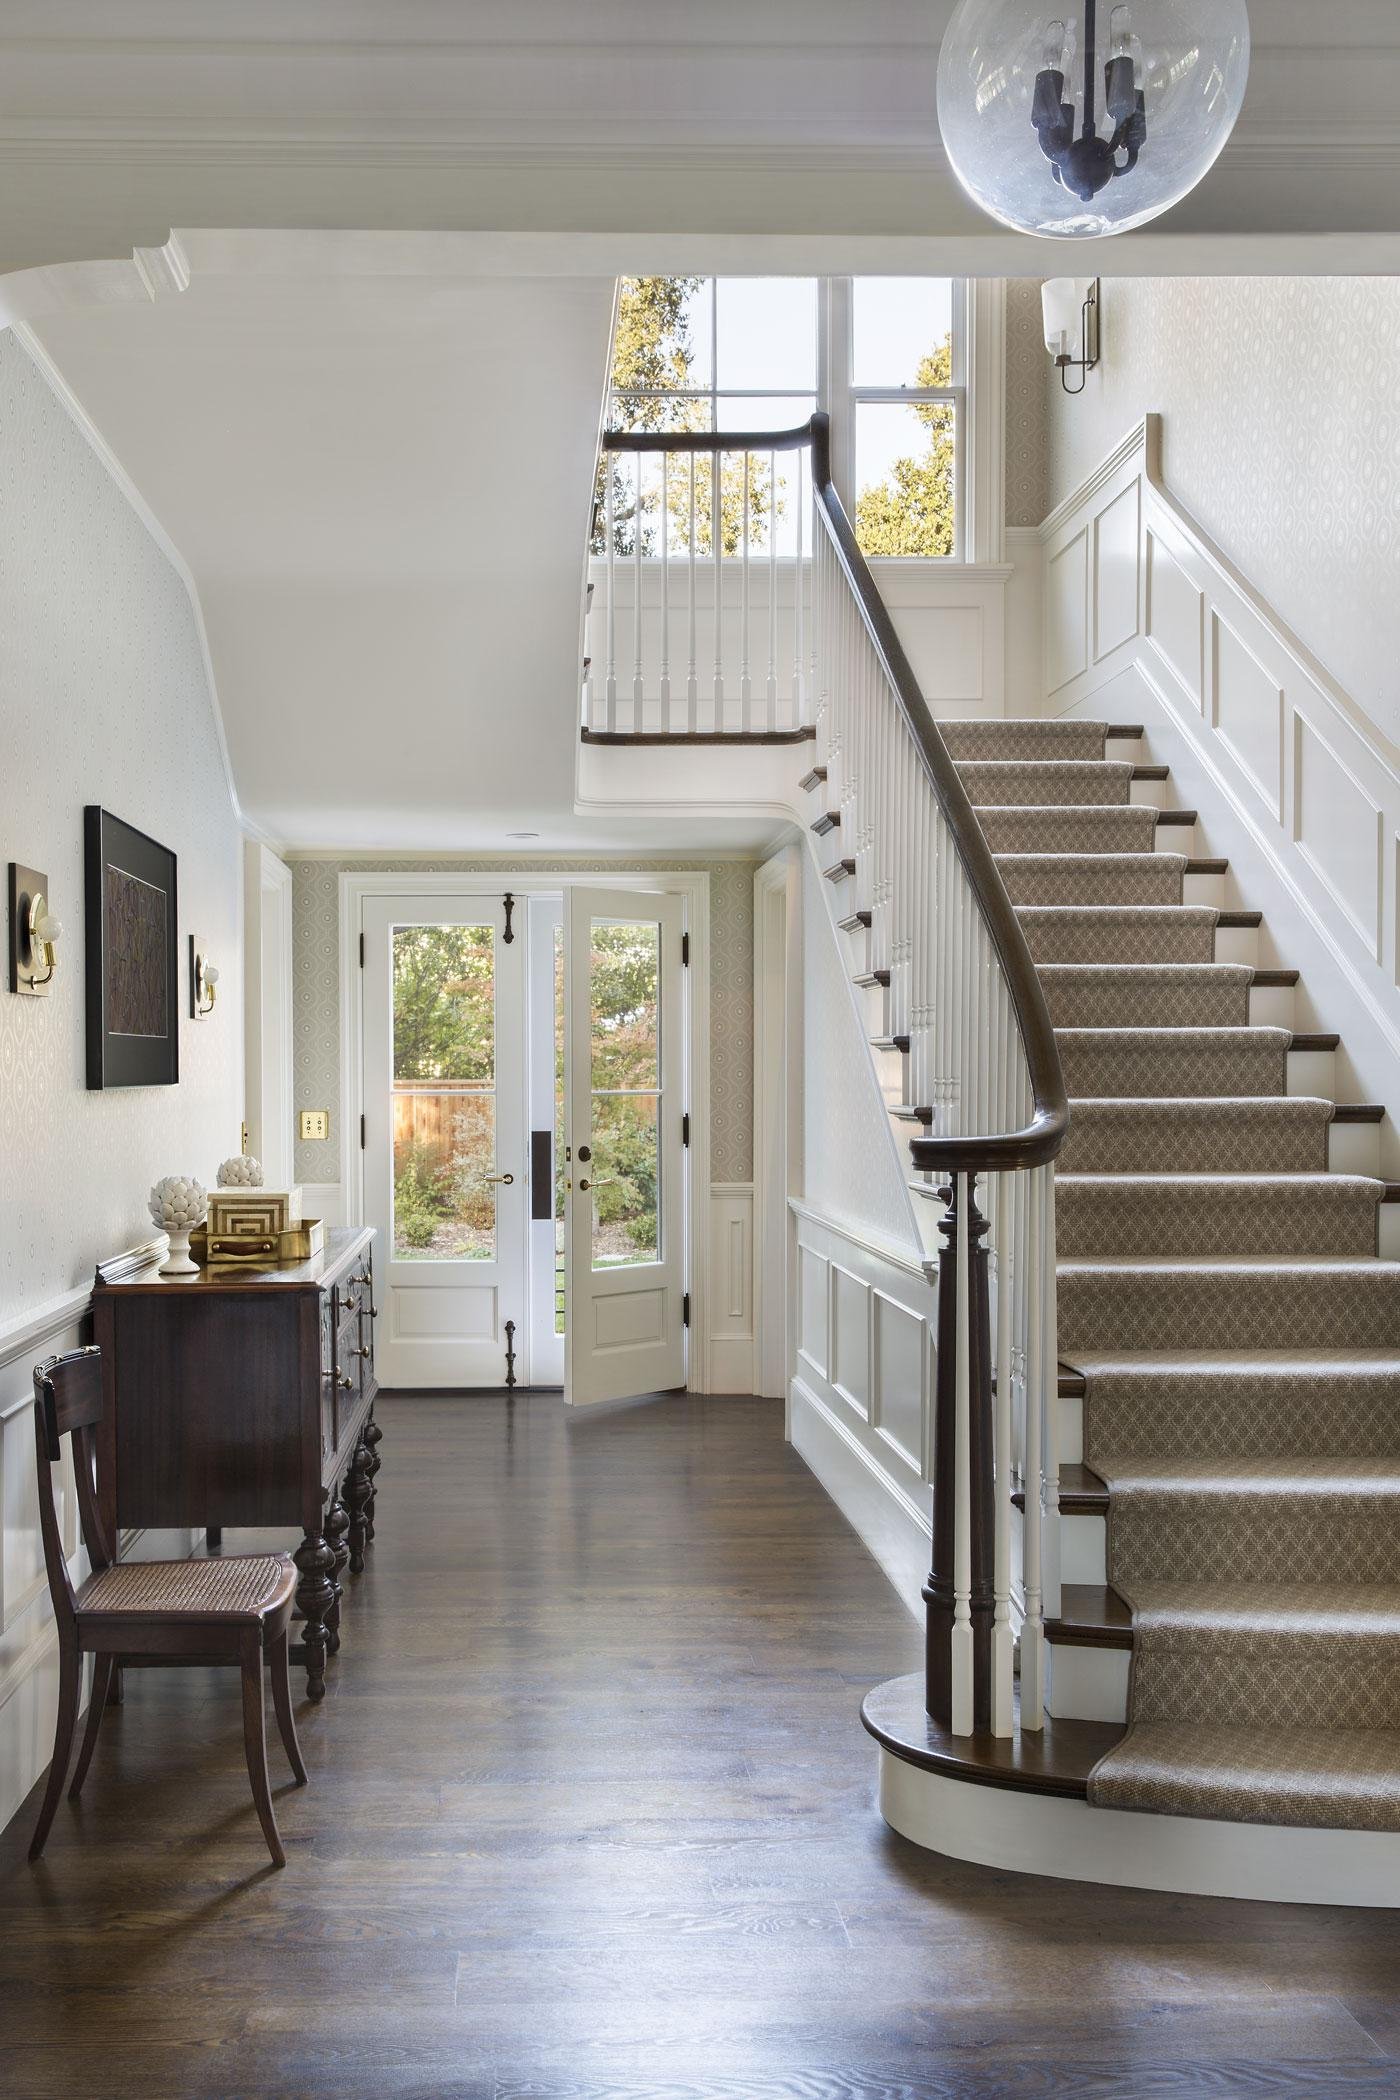 New TennesseeStyle Farmhouse Front Staircase Hallway Staircase American  TraditionalNeoclassical Farmhouse By Tim Barber Ltd